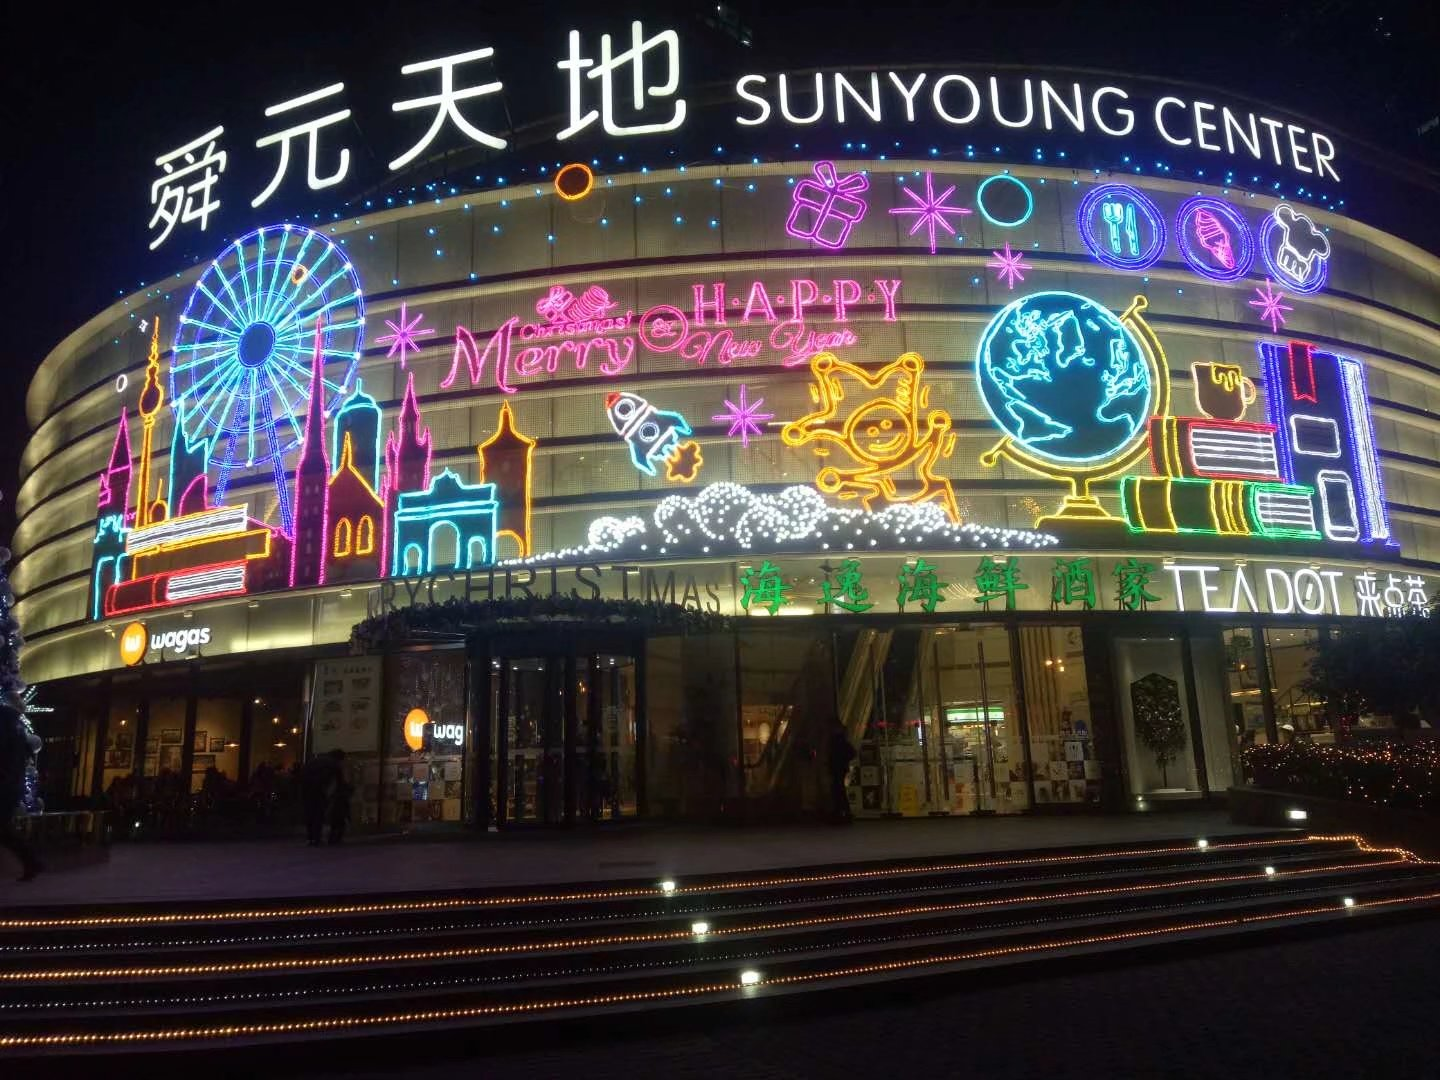 In 2016, the company's LED lighting project provides products for many enterprises (gait, outlets, tianhong, wanda).